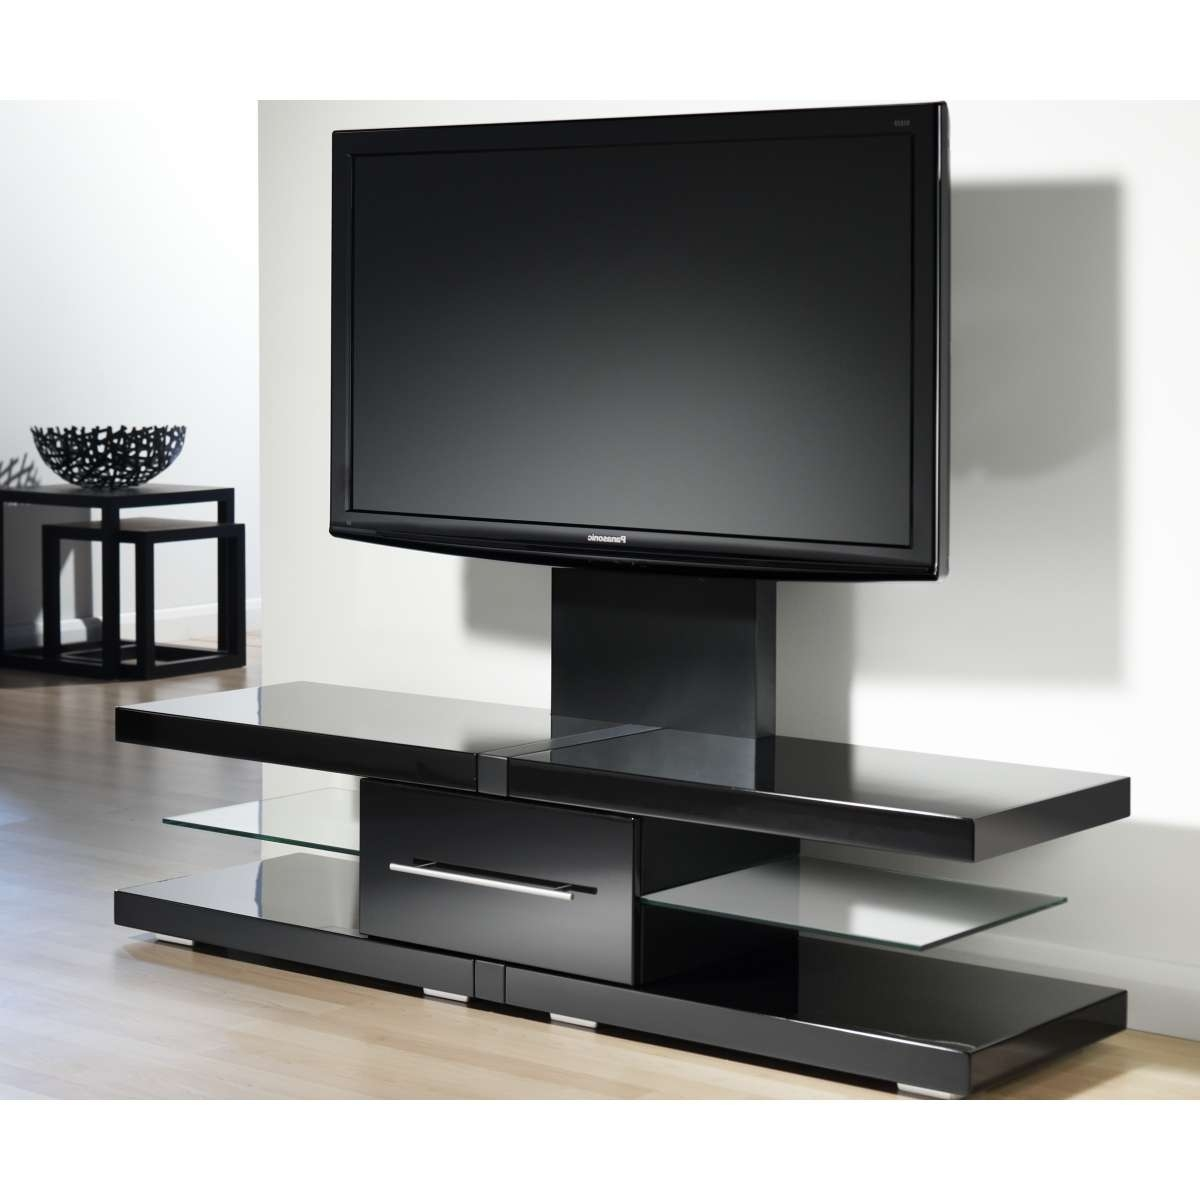 Incredible Flower In Cupboard Television Dvd Player Vcd Books Vase Within Long Black Tv Stands (View 6 of 15)